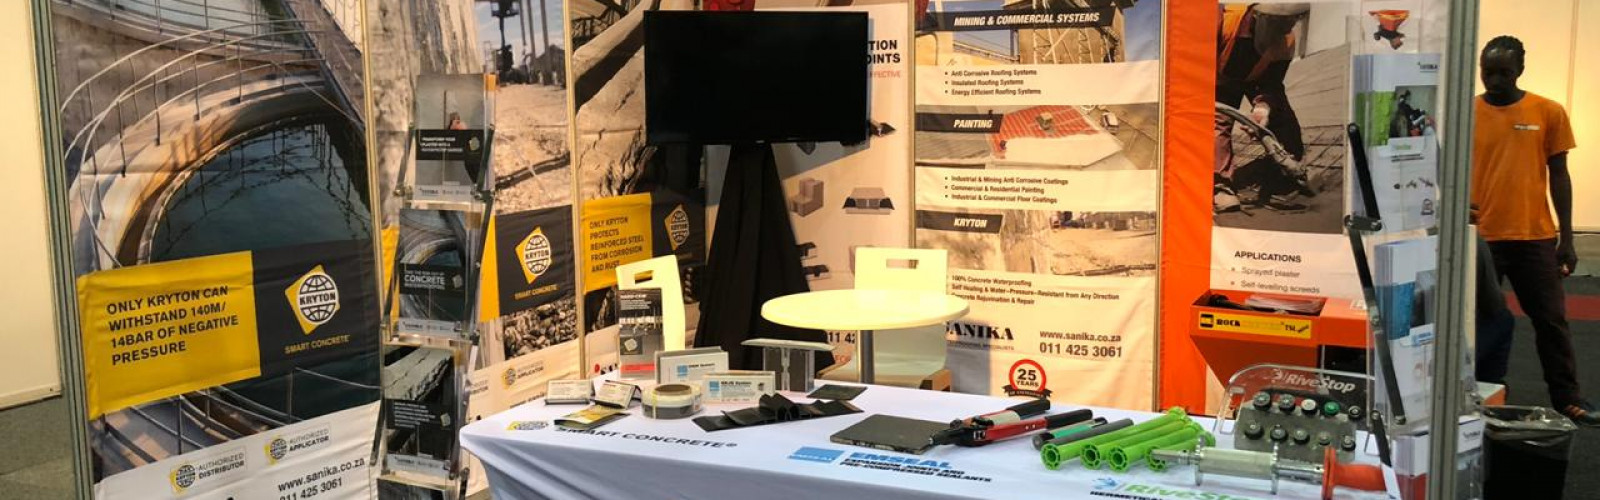 Image of Sanika Waterproofing Specialists exhibit at the KZN Construction Expo 2019